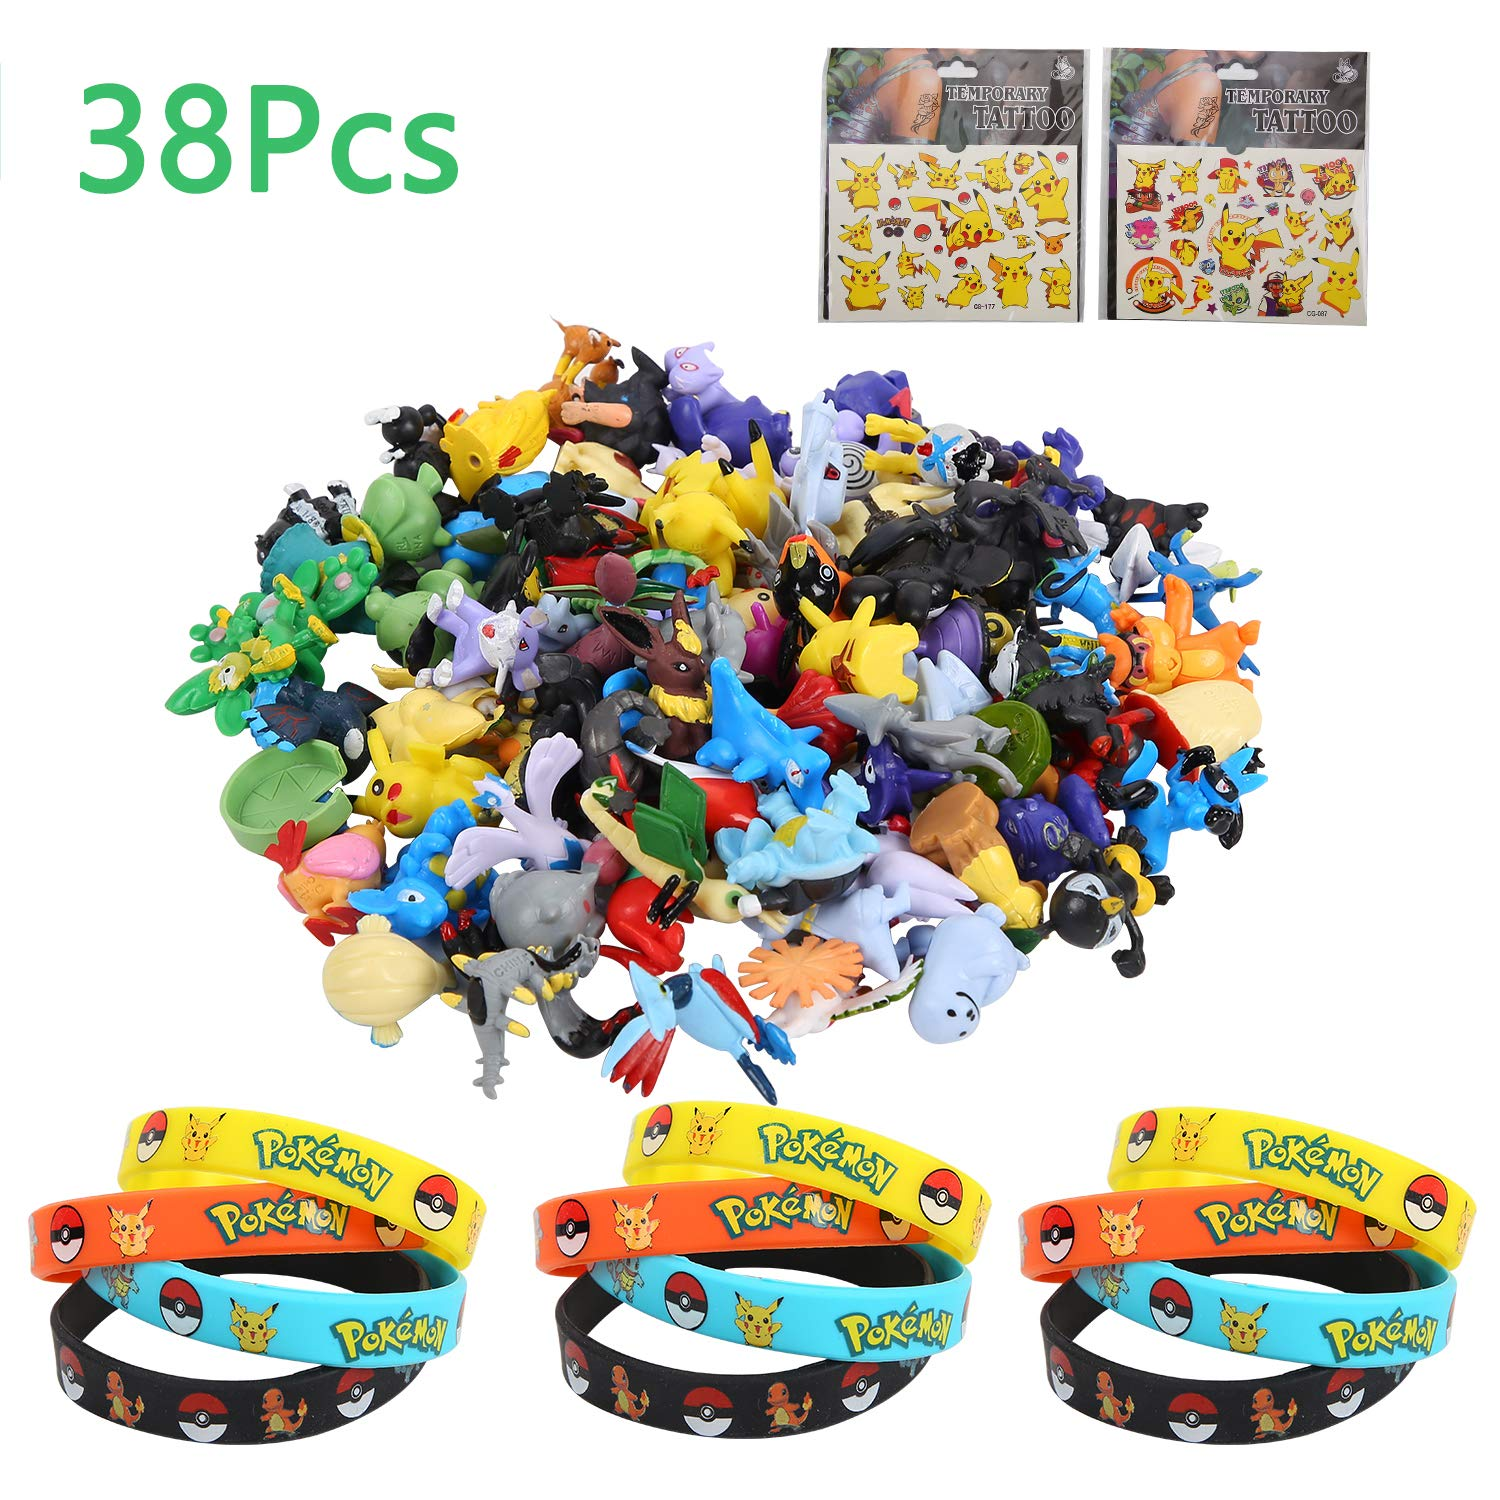 Colmanda Pokemon Monster, 38 Piezas Pokemon Monster Mini Figure Pokemon Pulsera de Silicona Pegatina Pikachu para Regalos y Fiestas para Niños